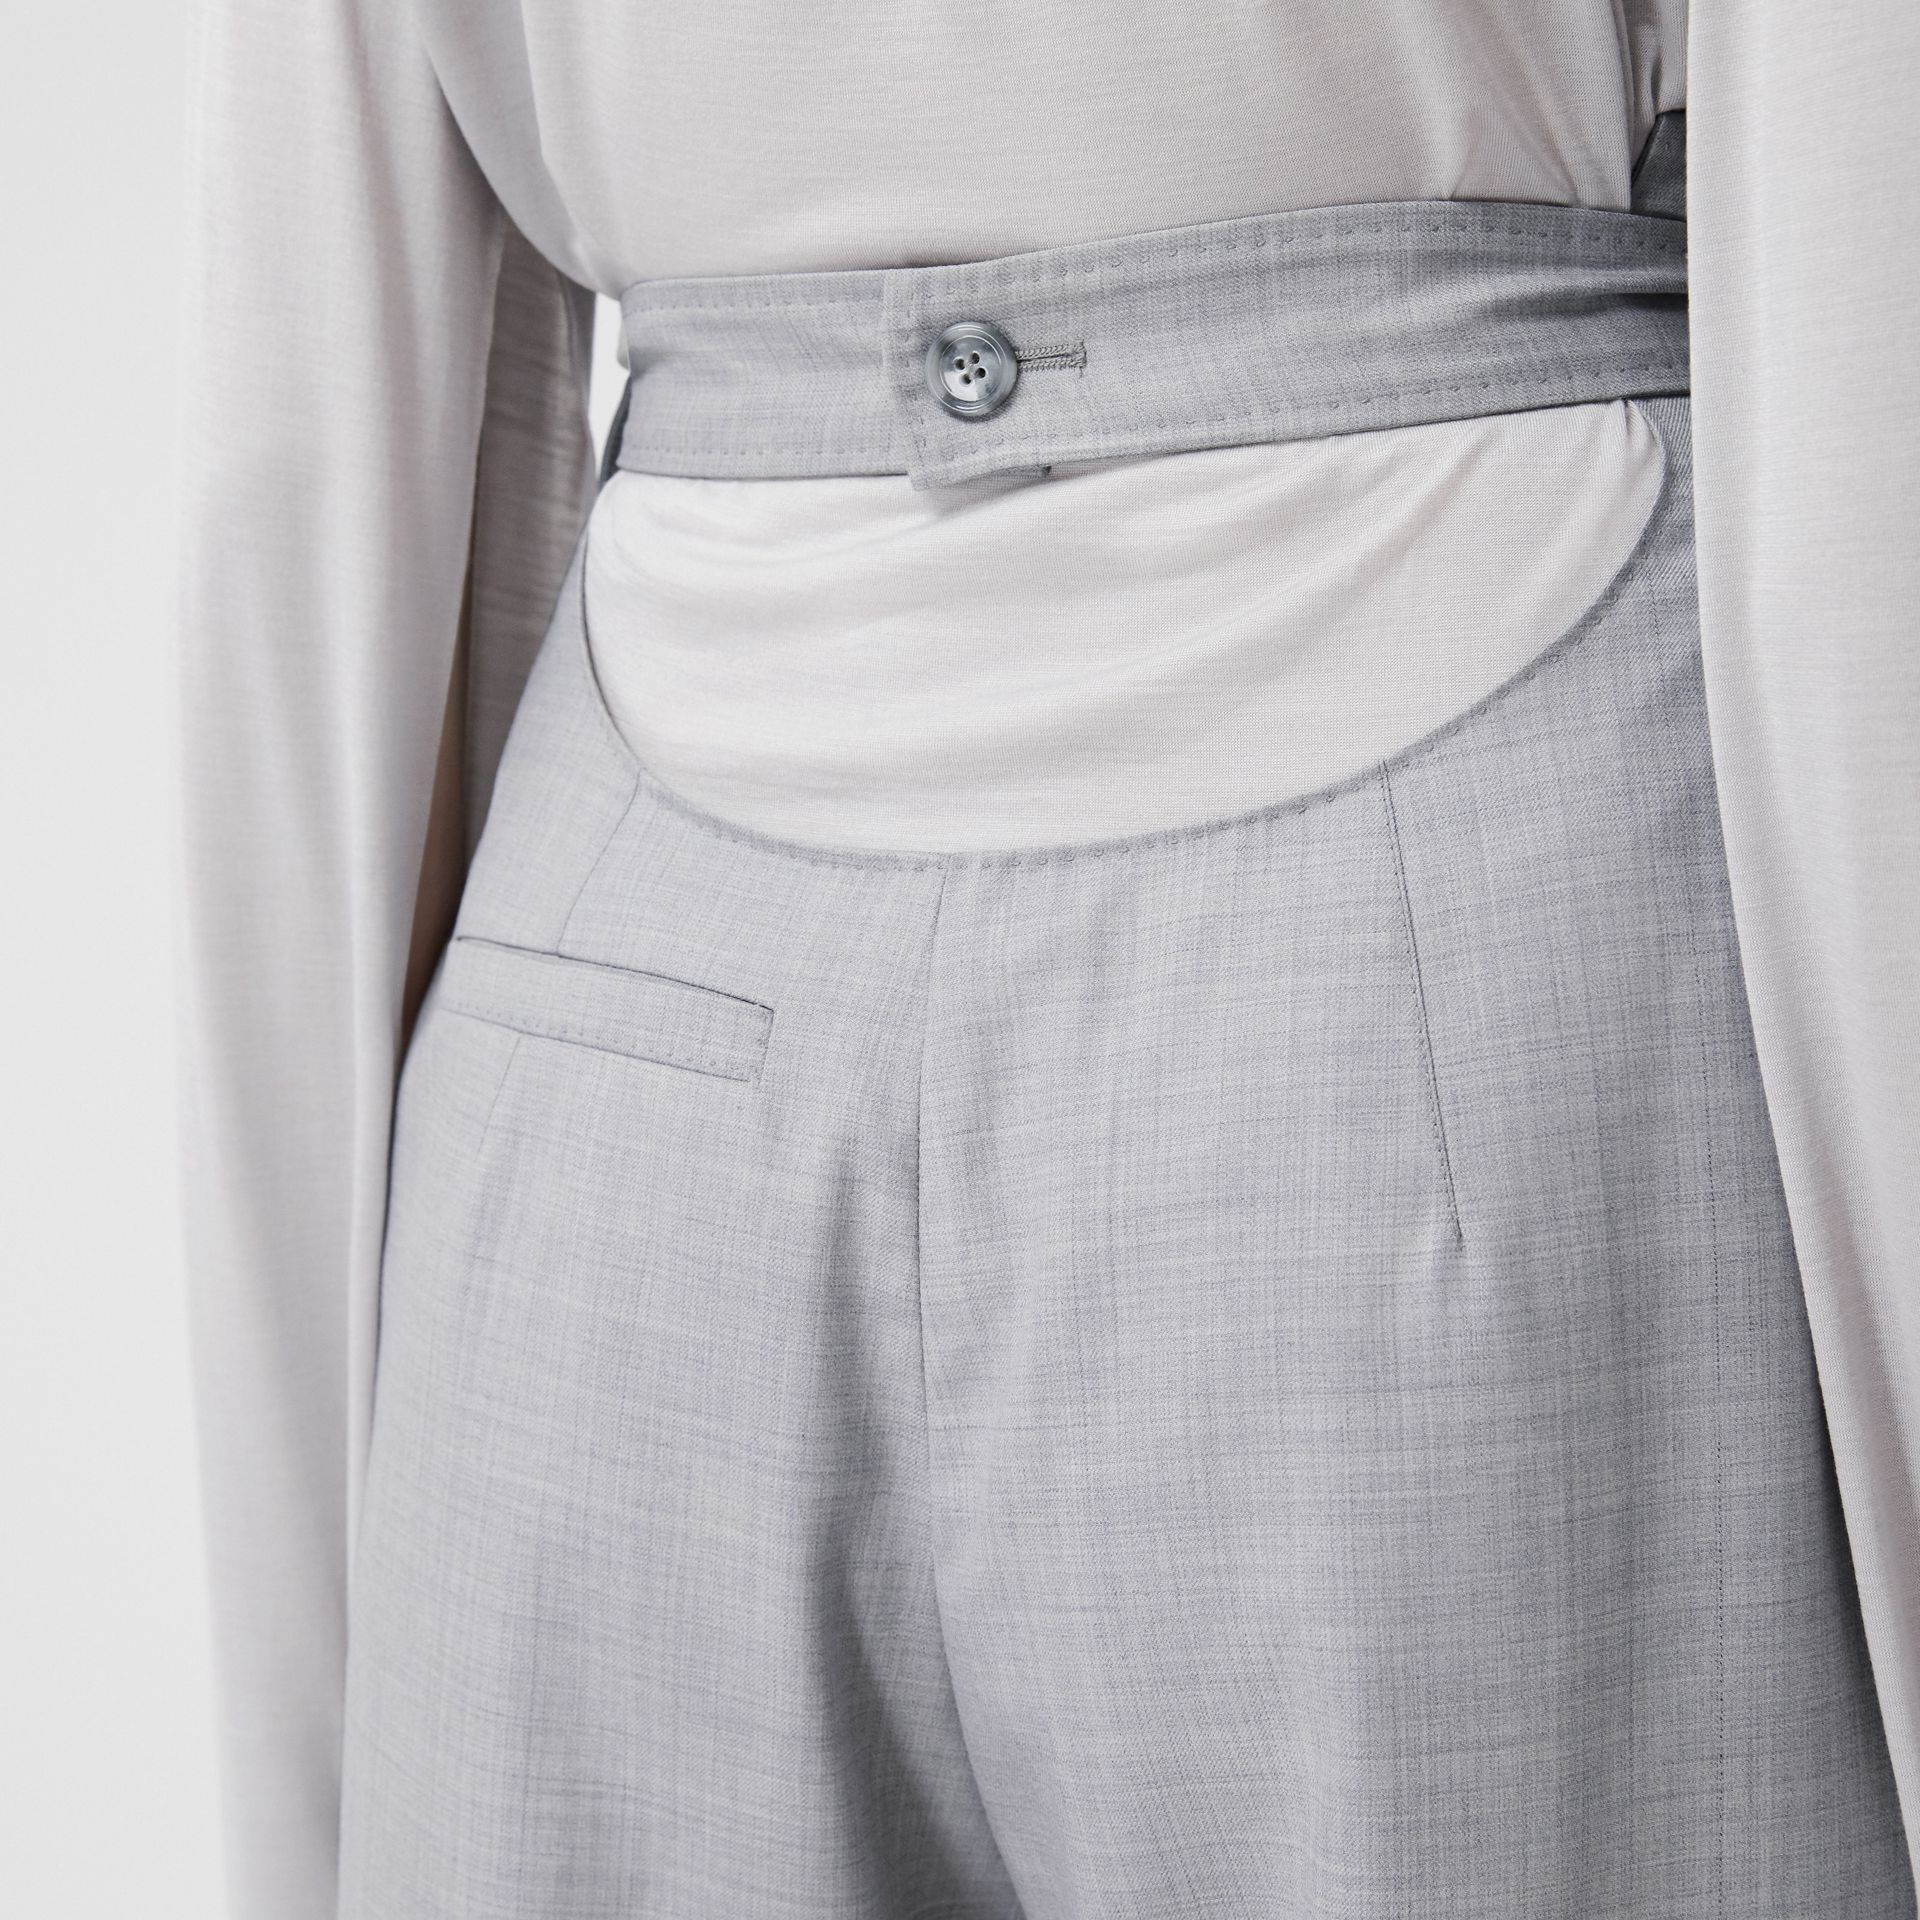 Cut-out Detail Wool Jersey Tailored Trousers in Cloud Grey - Women | Burberry Canada - gallery image 4